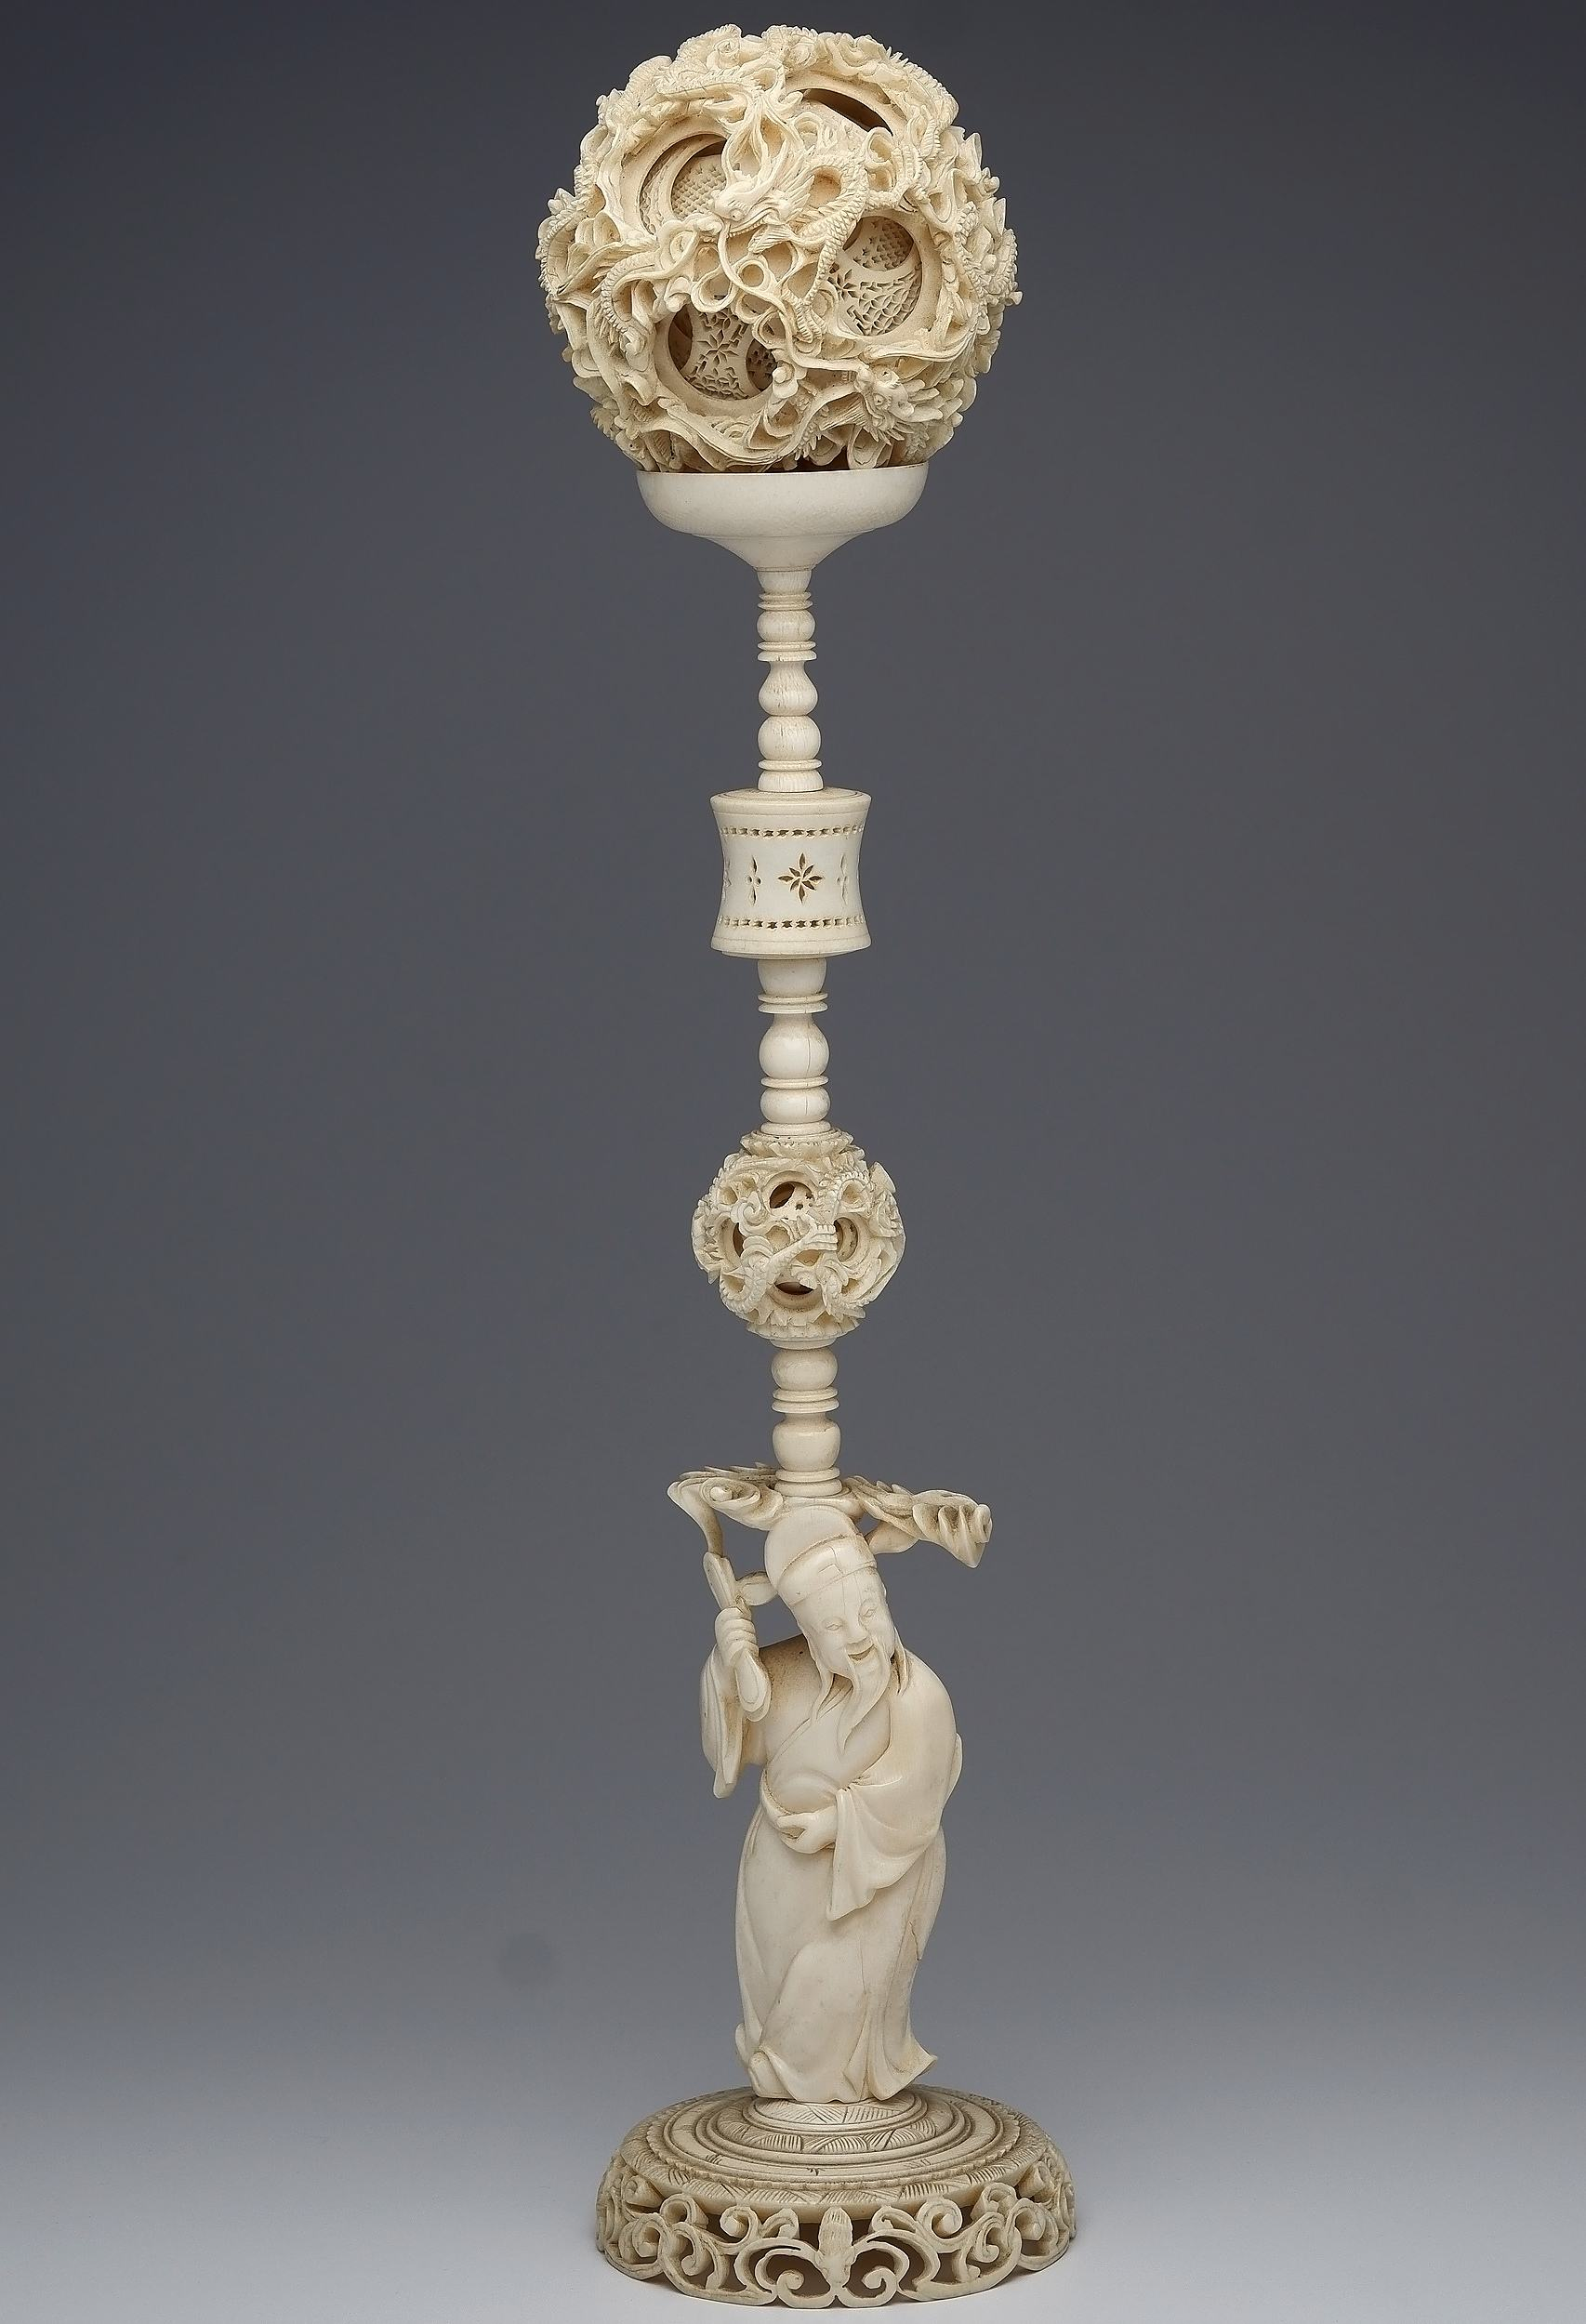 'Exceptional Large Antique Chinese Carved Ivory Dragon Puzzle Ball on an Immortal and Lantern Form Stand, Late 19th/Early 20th Century'